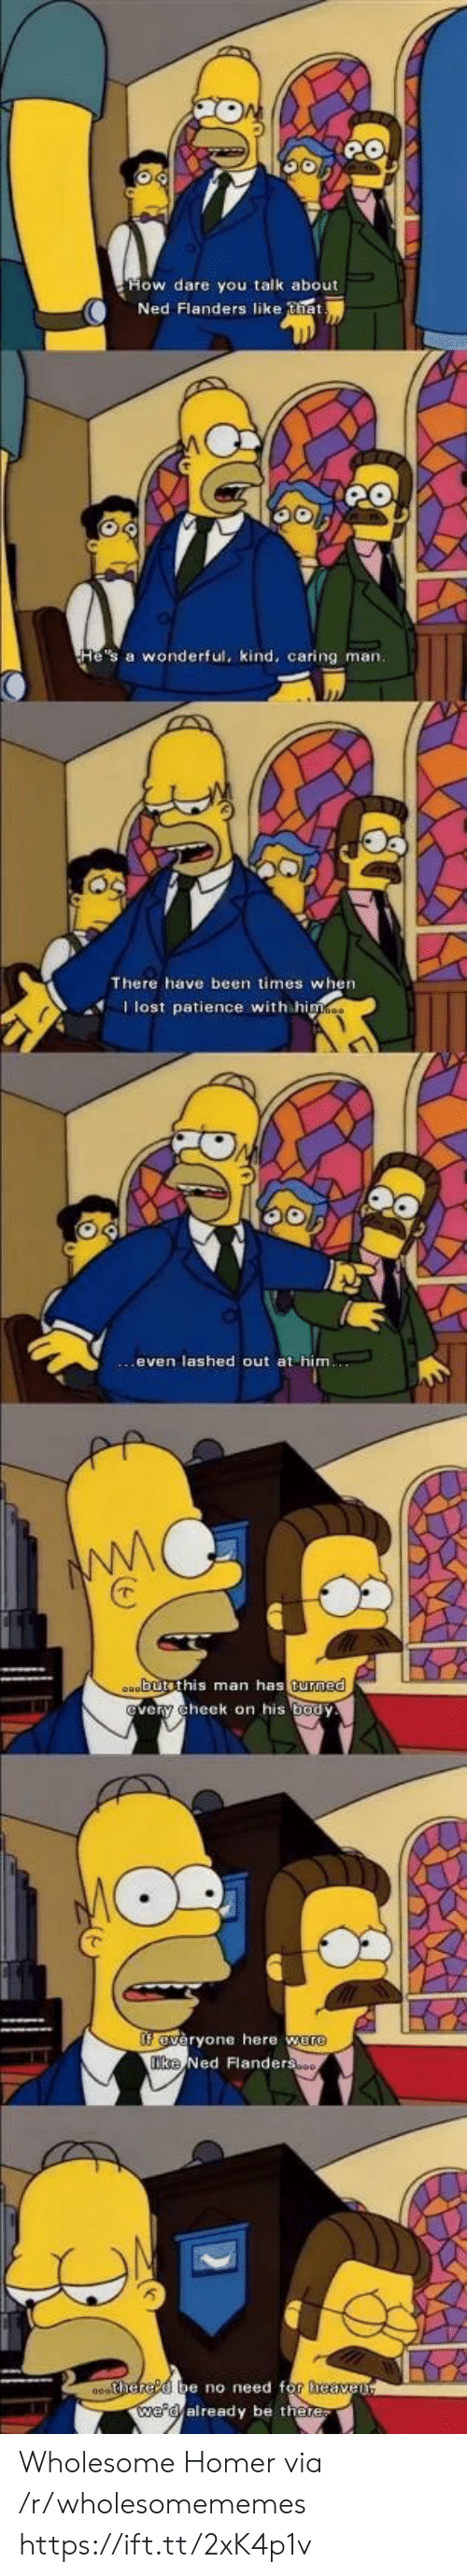 Heaven, Ned Flanders, and Patience: Ned Flanders like tia  He's a wonderful, kind, caring man.  There have been times when  Ilost patience with himes  oabutsthis man has turned  very cheek on his body  fveryone here were  Tke Ned Flanderso  0ehered be no need for heaven  we'd already be there Wholesome Homer via /r/wholesomememes https://ift.tt/2xK4p1v